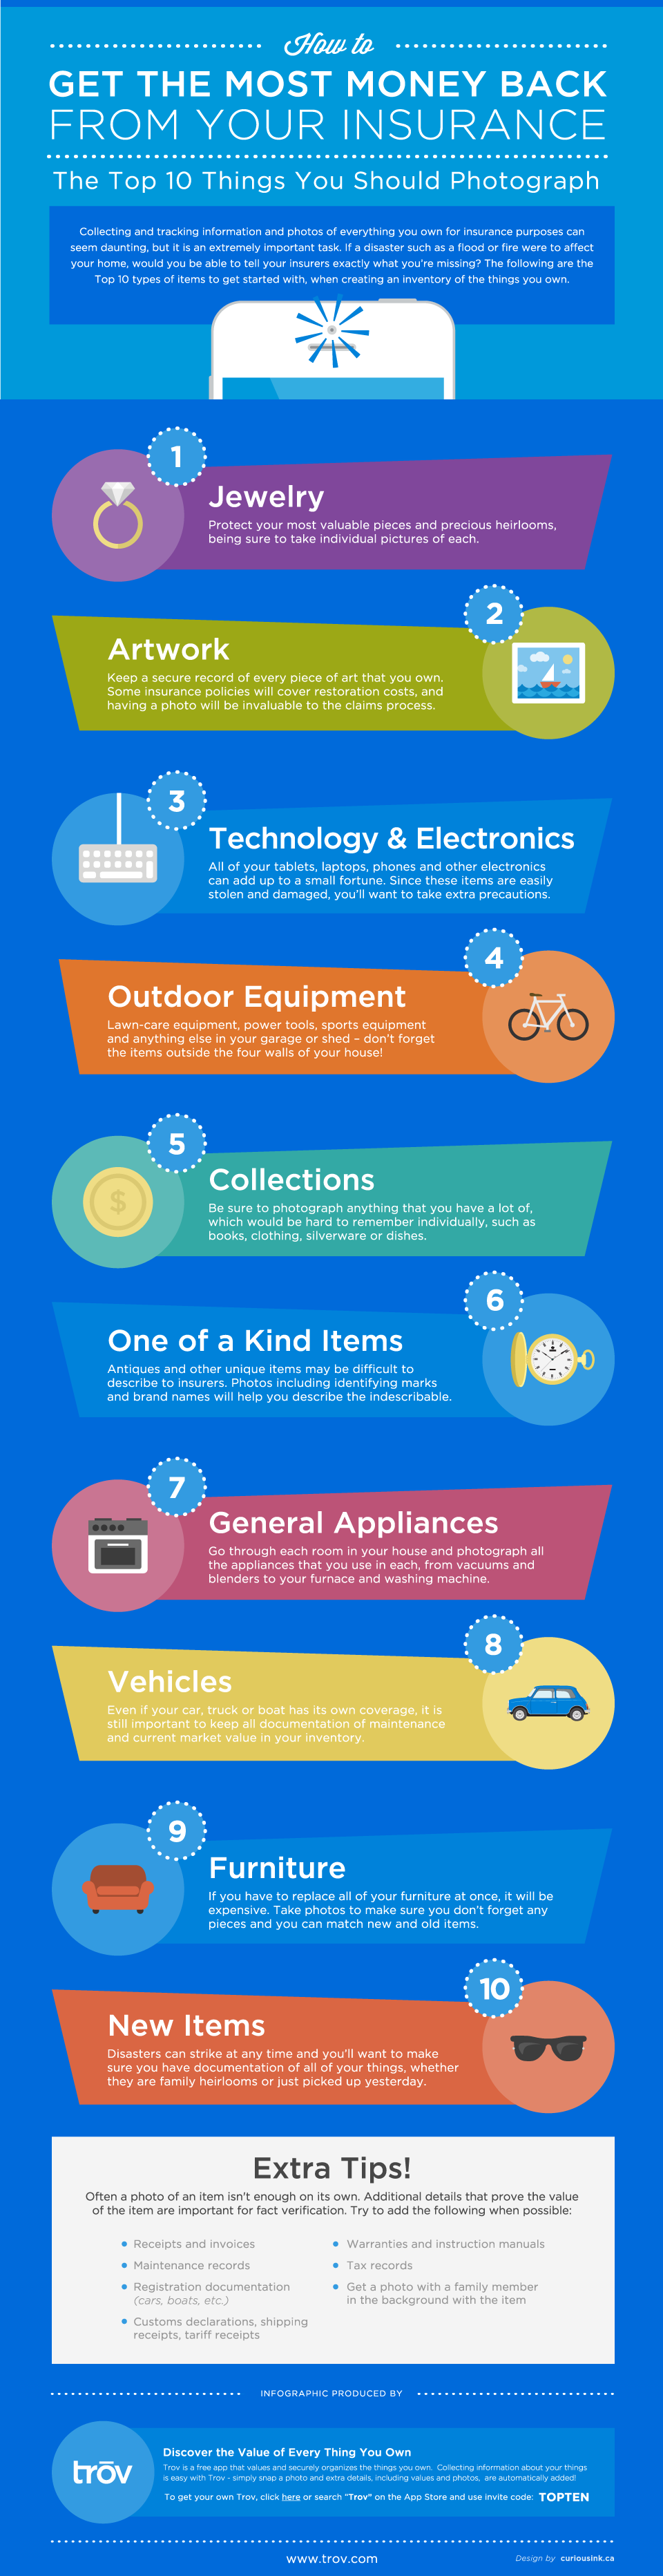 Top-10-Things-To-Photograph-For-Insurance-INFOGRAPHIC-A